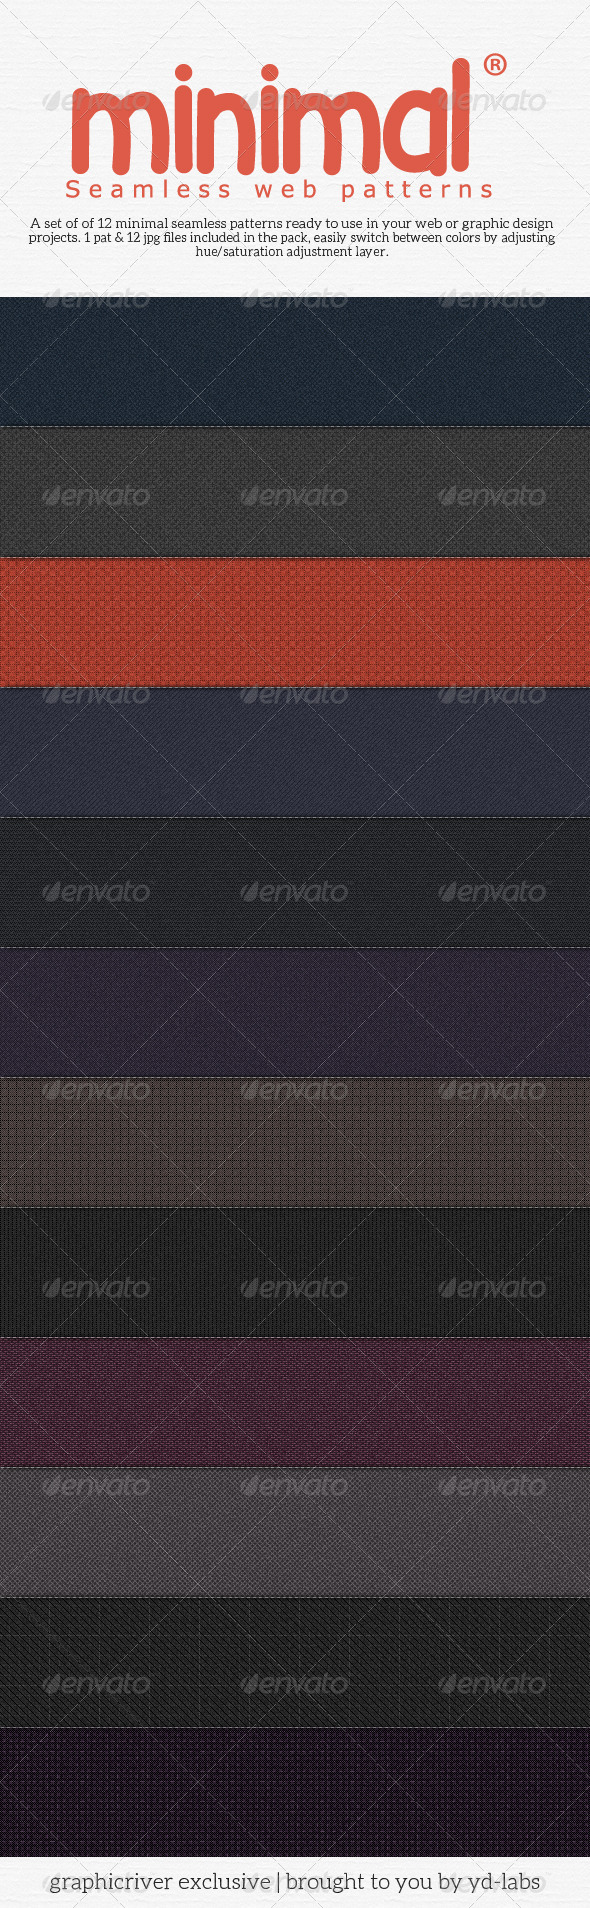 Minimal Seamless Web Patterns Pack 1 - Patterns Backgrounds